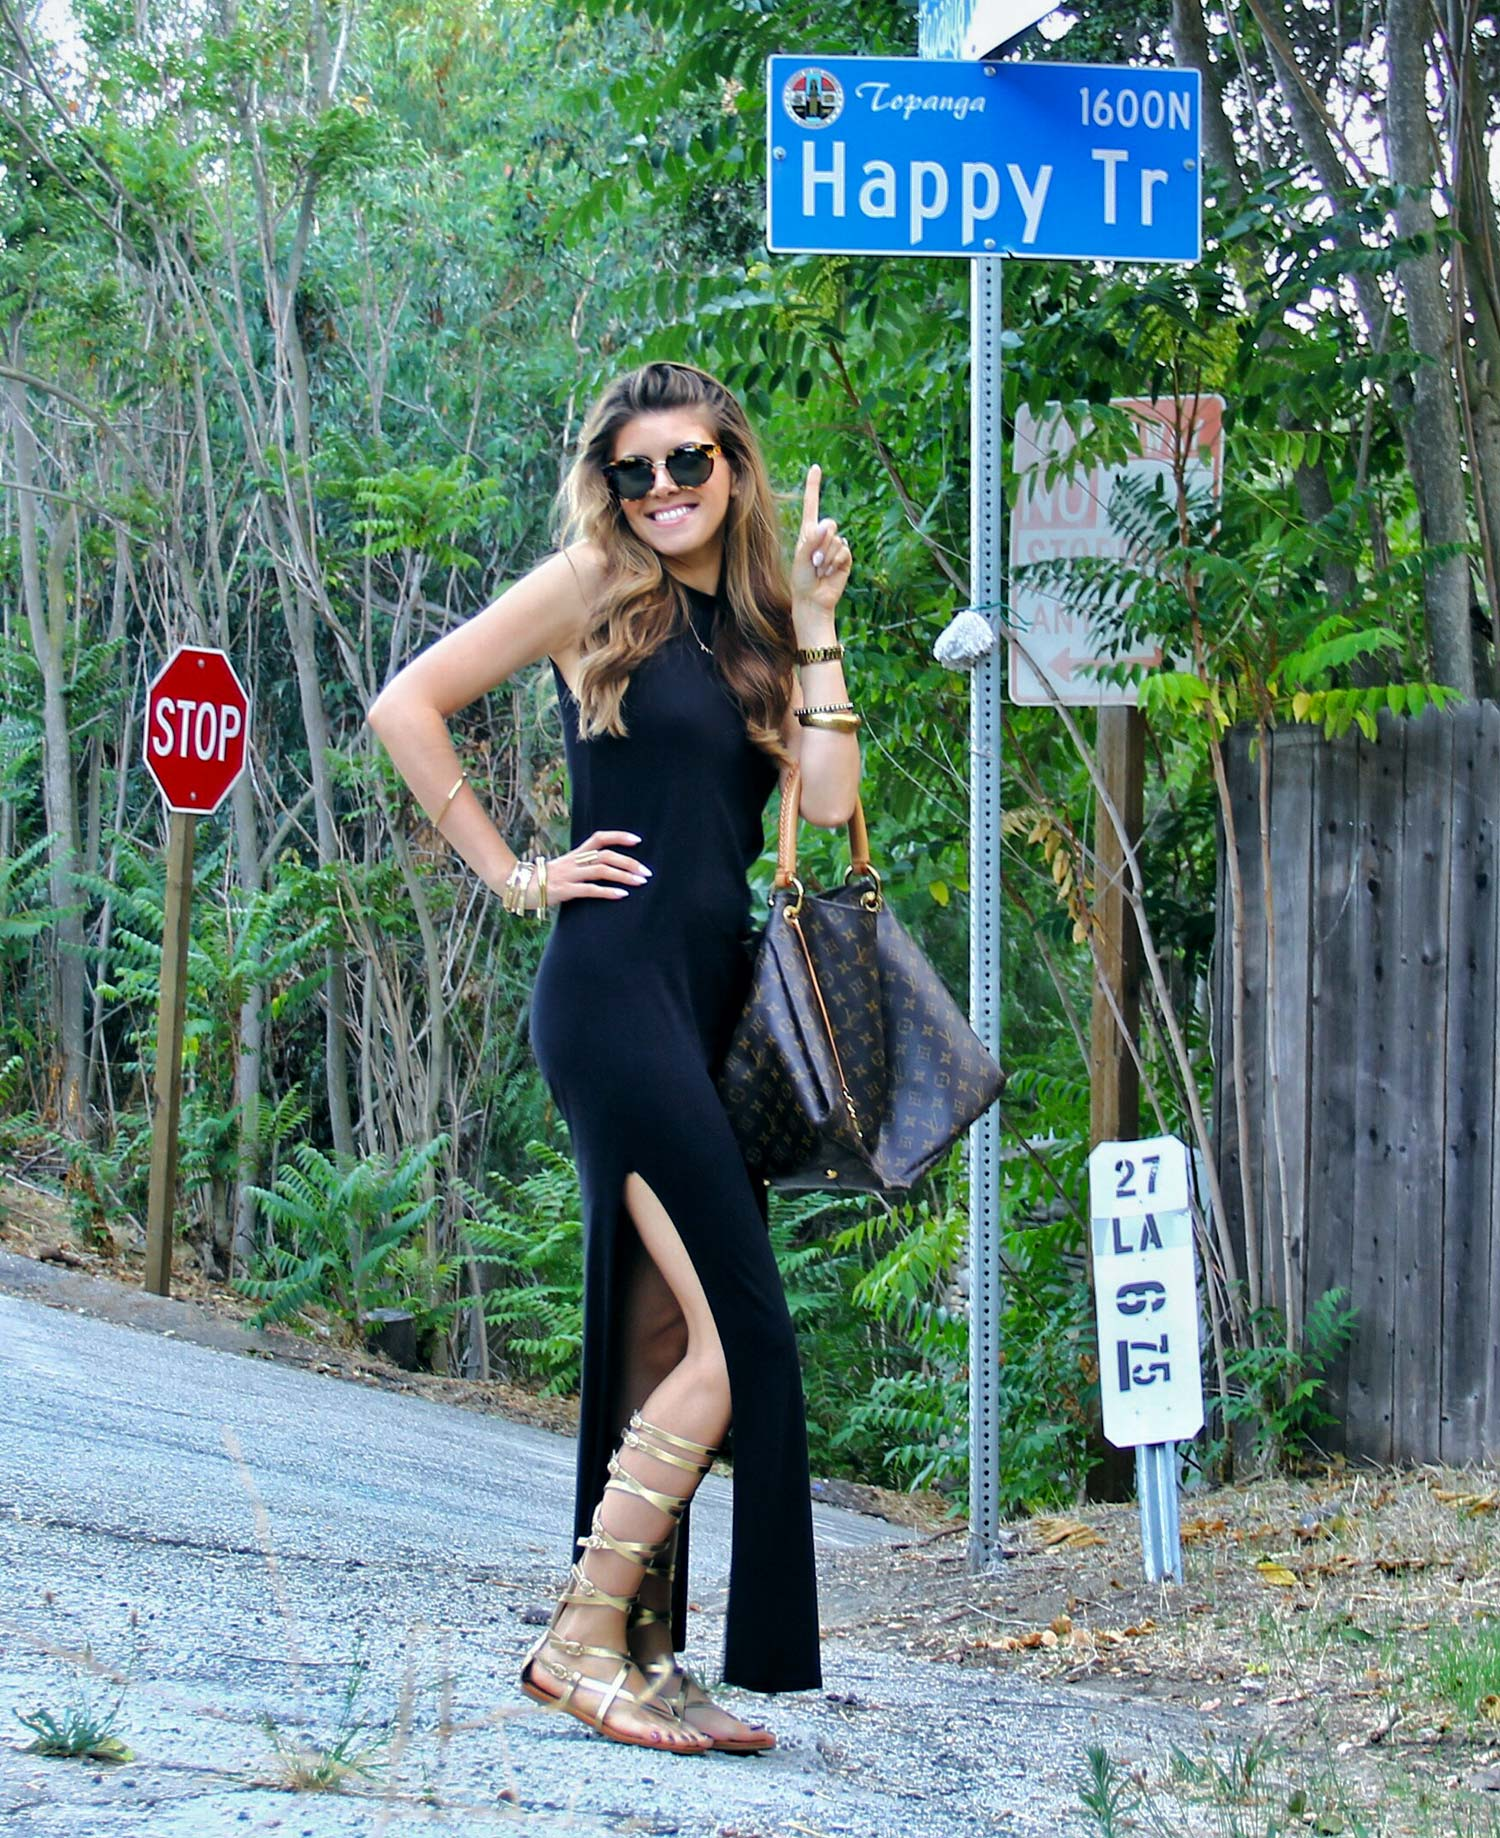 Black Maxi Dress with Gladiator Sandals and Louis Vuitton Handbag